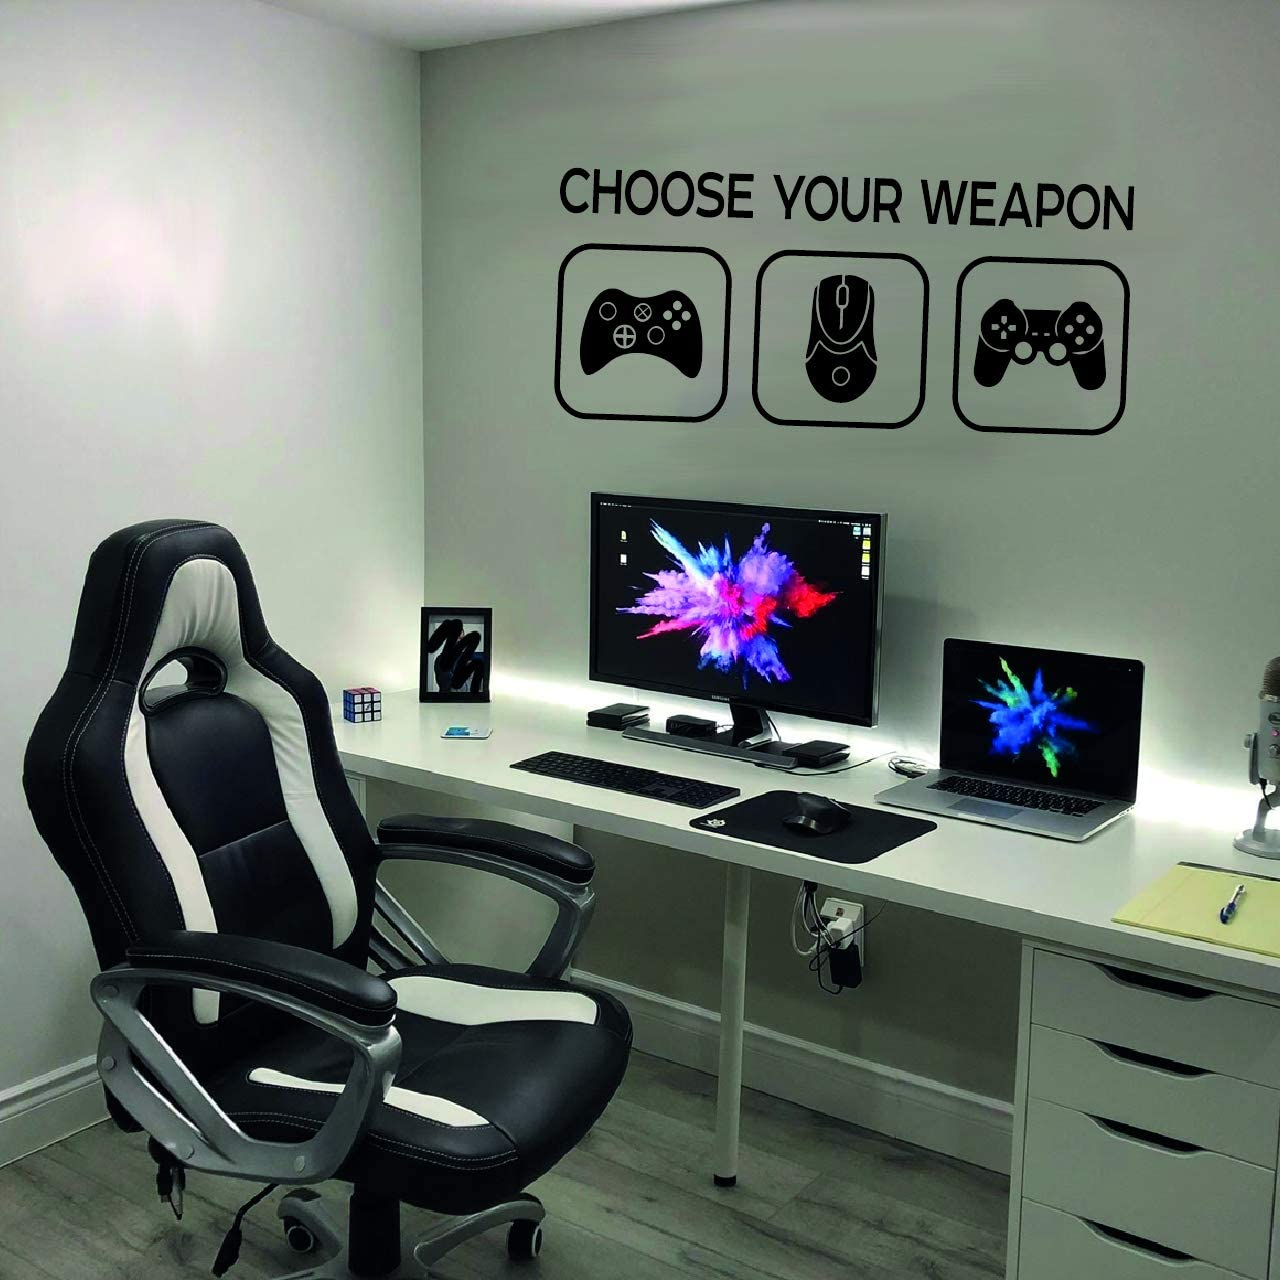 Choose Your Weapon Video Game Gaming Vinyl Decal Wall Sticker Mural Playstation Controllers Black Xbox